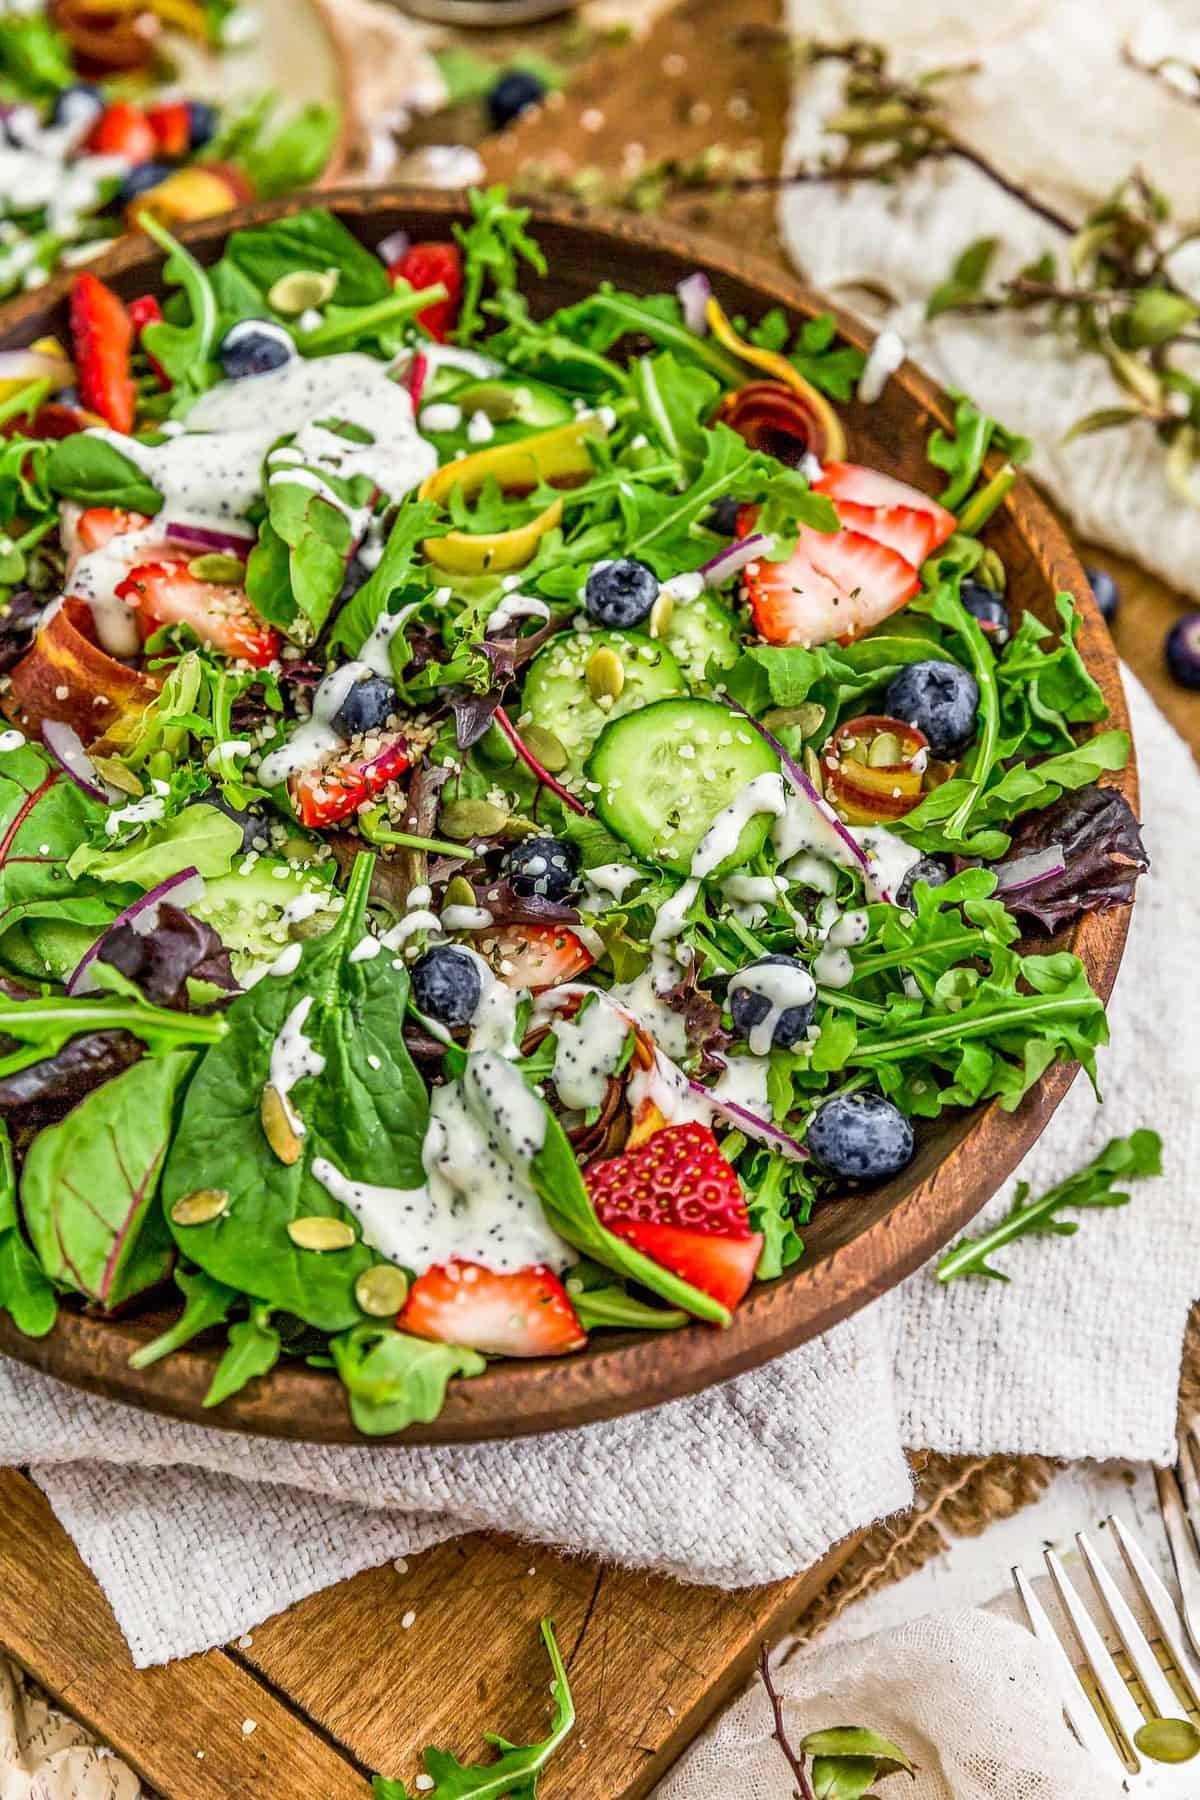 Salad Bowl with Vegan Lemon Poppy Seed Dressing